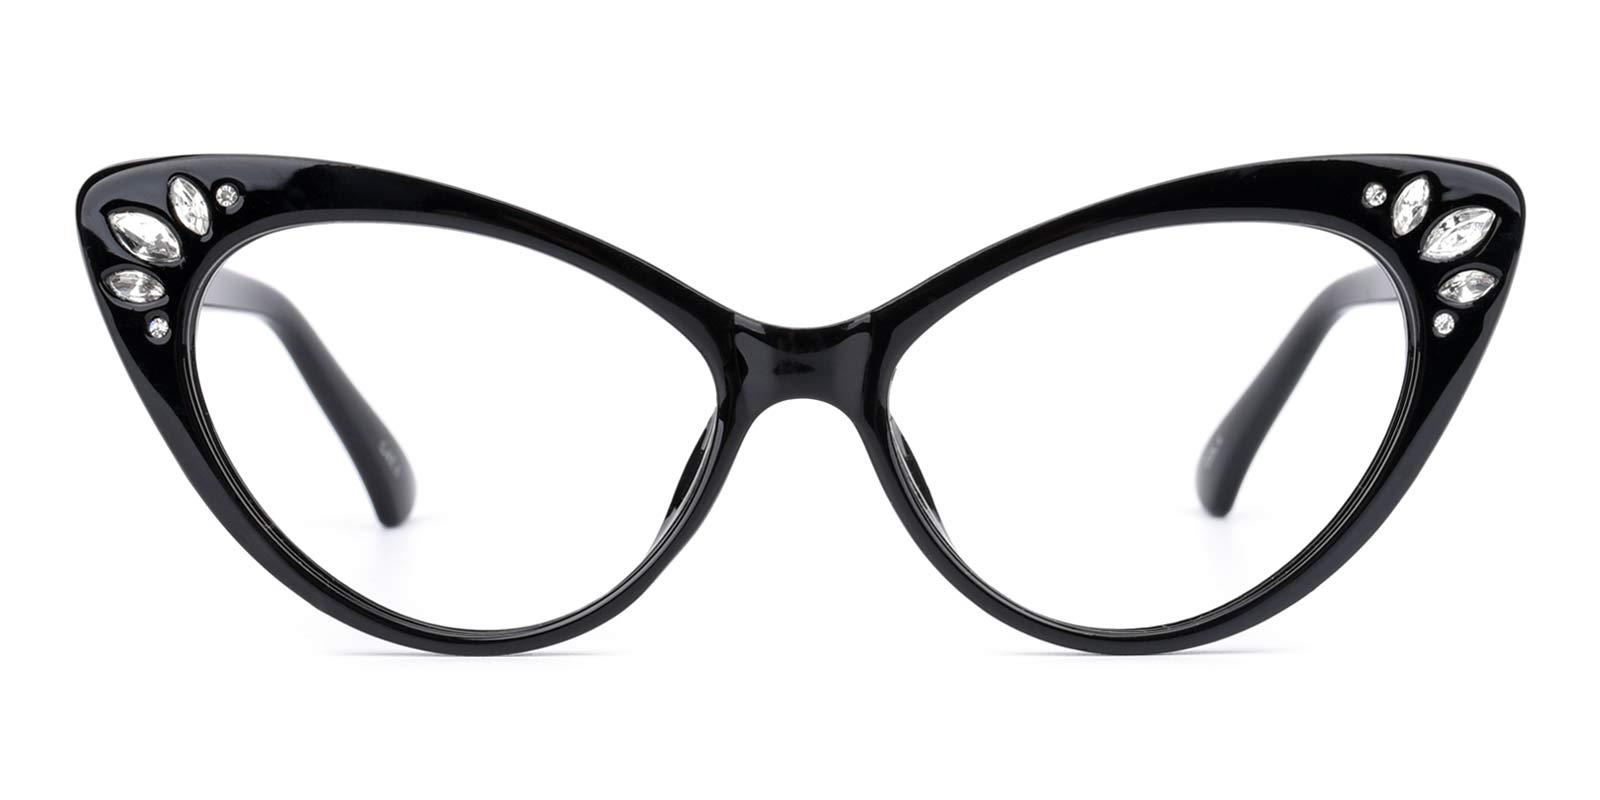 Samber-Black-Cat-Plastic-Eyeglasses-additional2